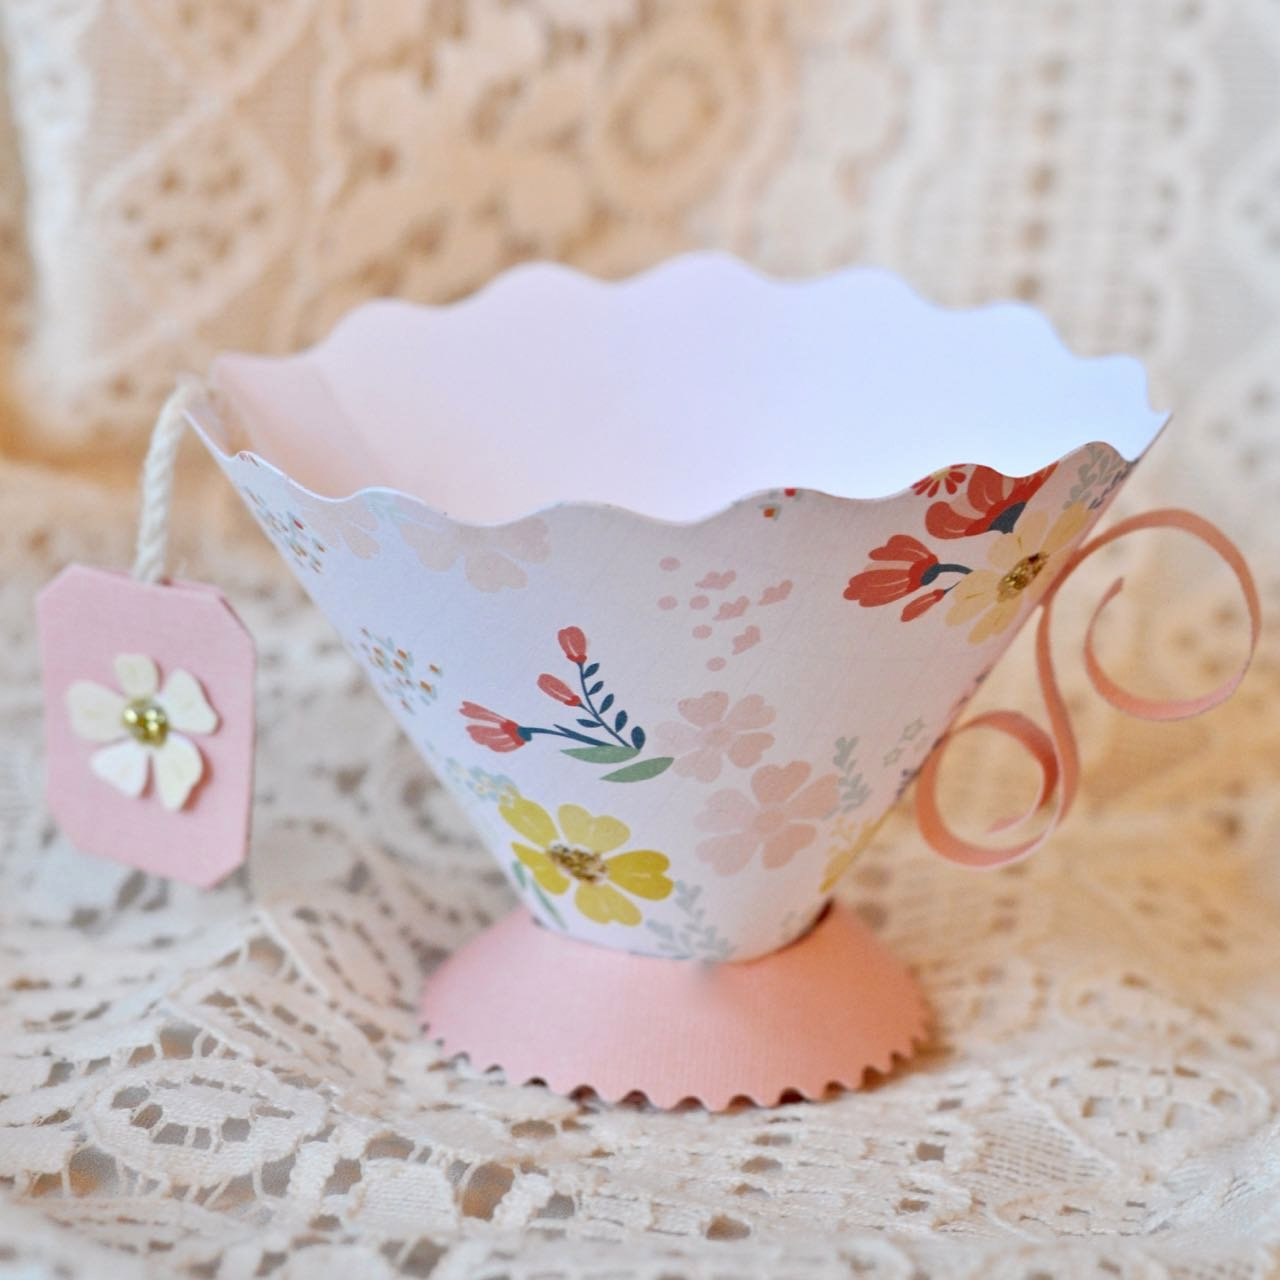 Paper Teacup Template Awesome Paper Teacup Party Favor Make Life Lovely